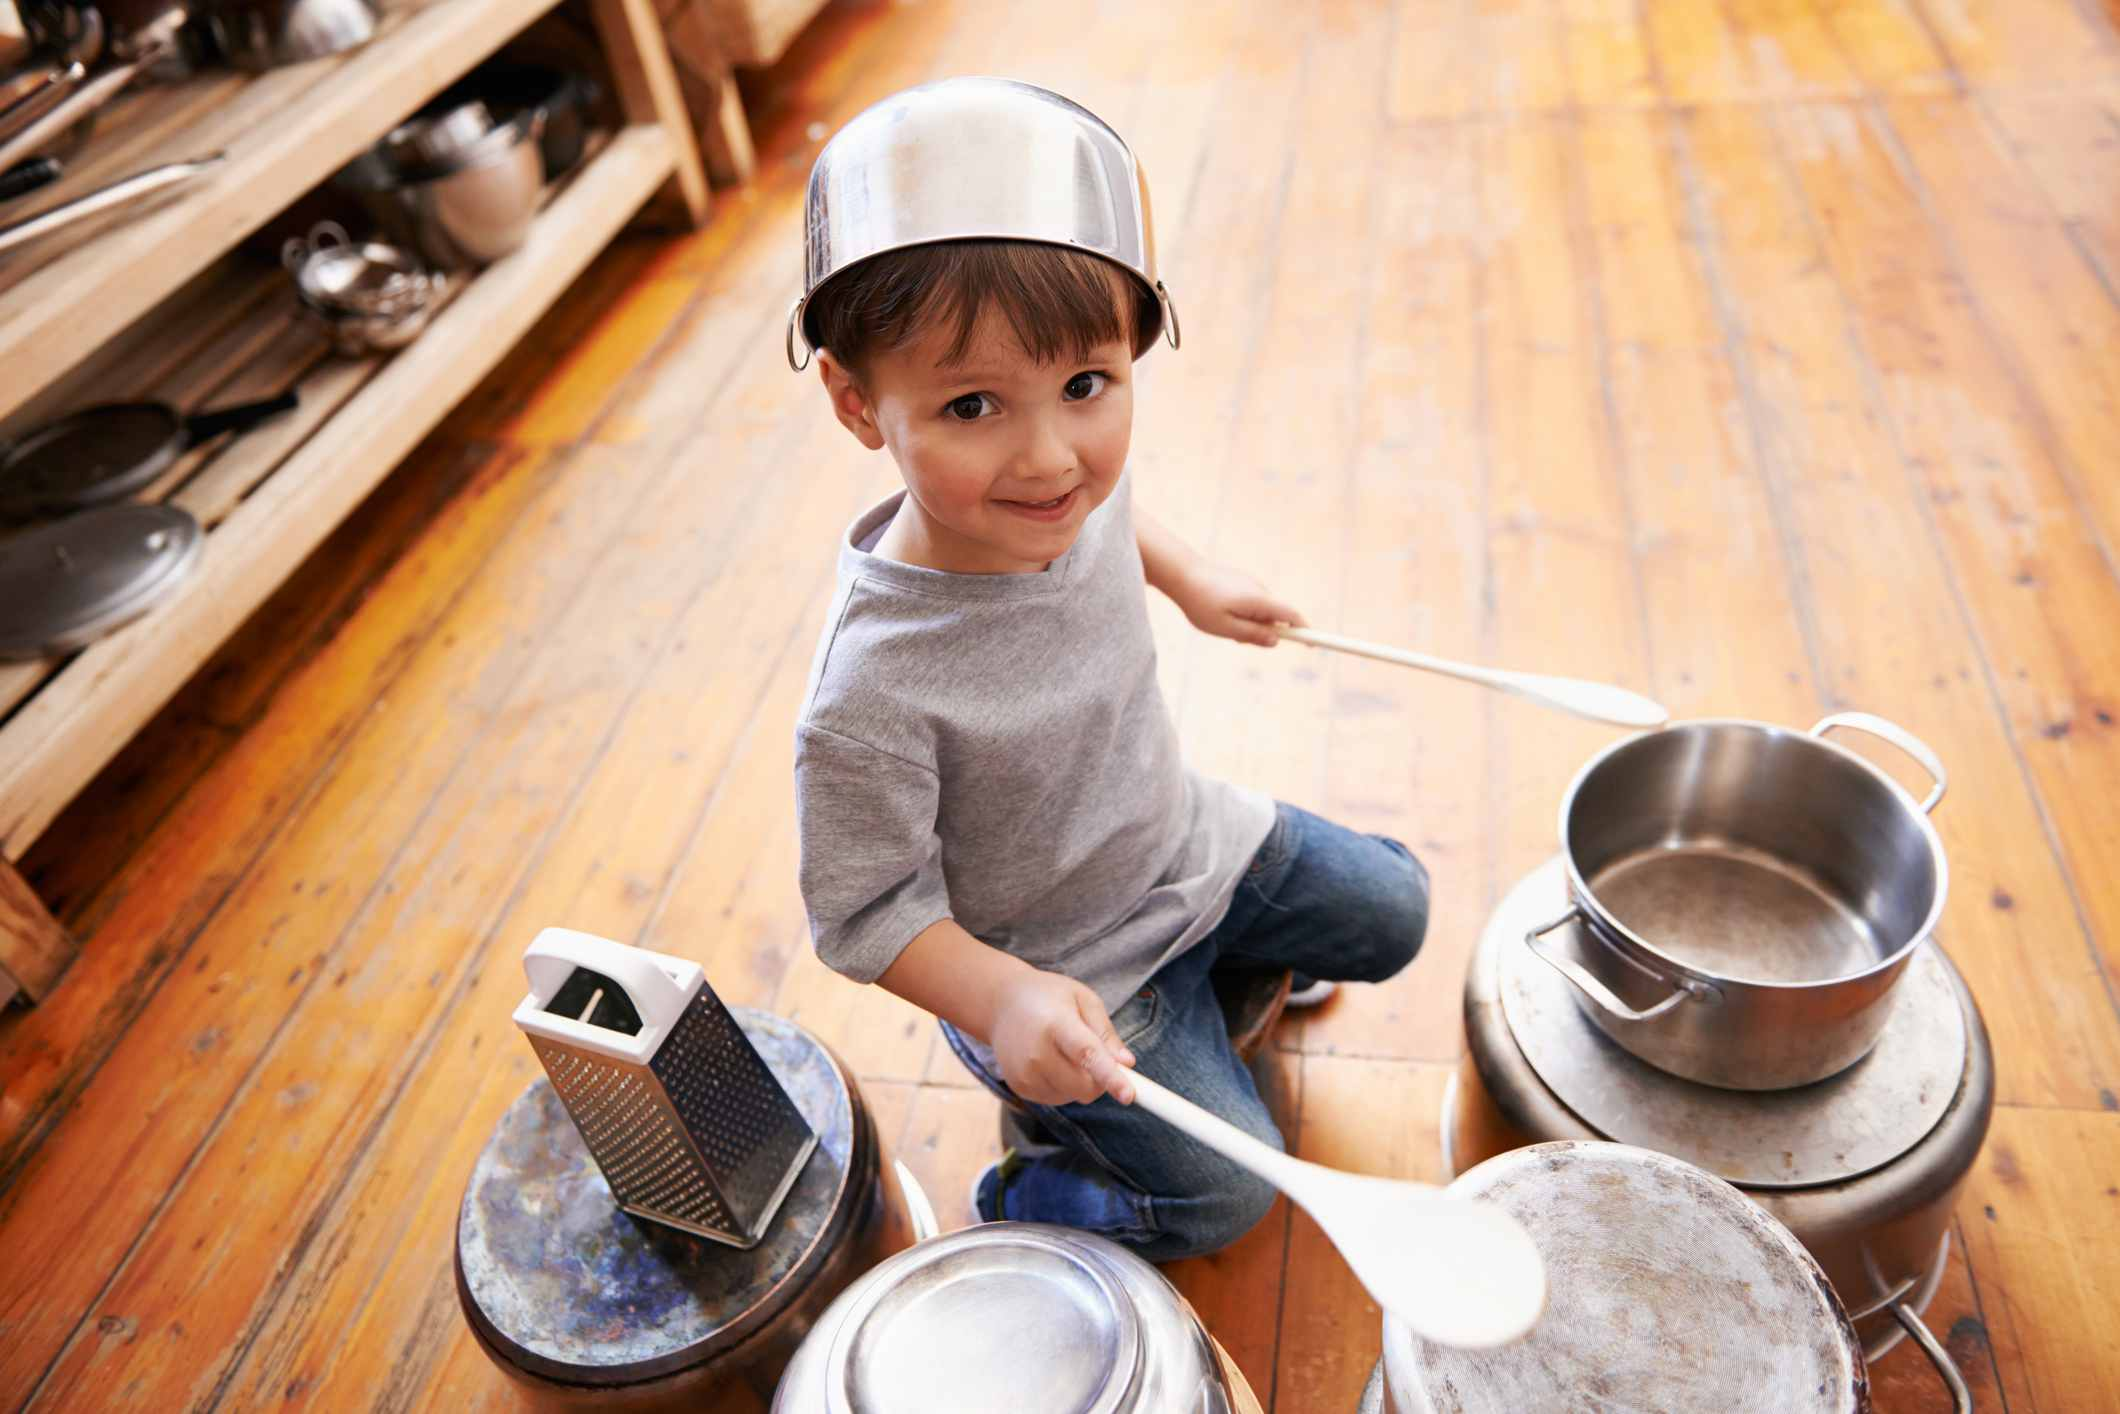 Boy playing on pots and pans